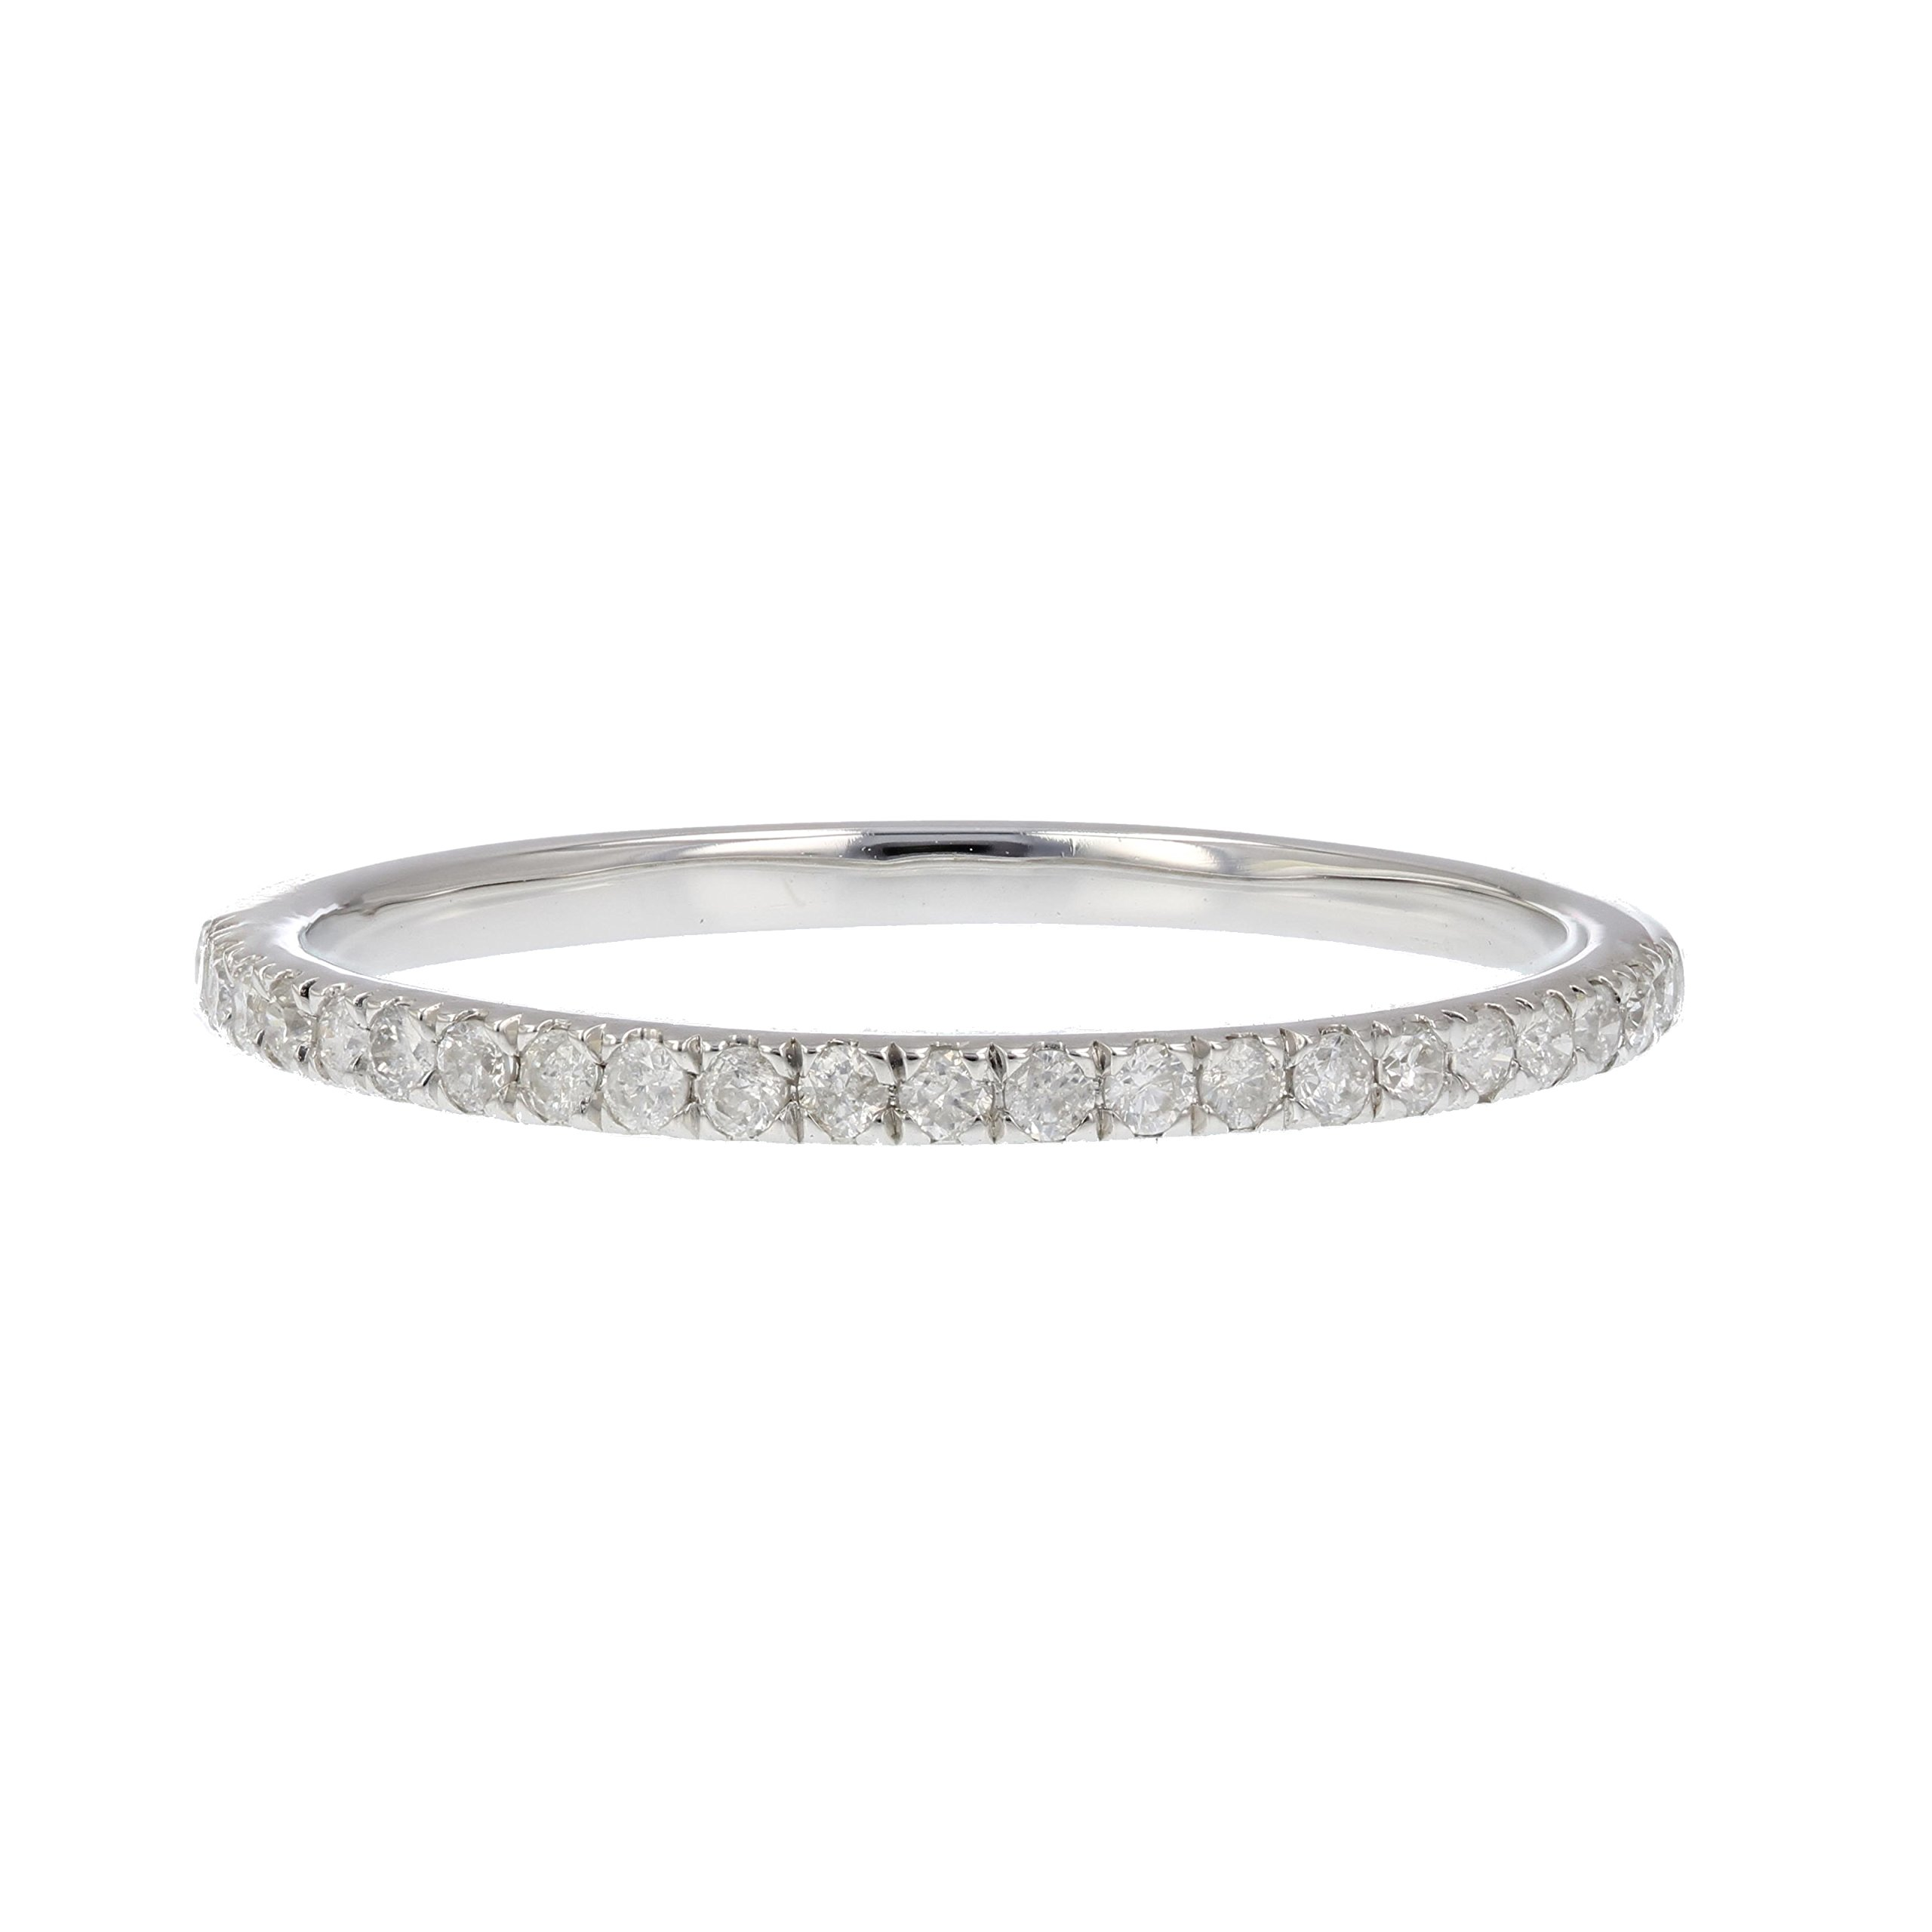 1/6 ctw Pave Diamond Wedding Band in 10K White Gold In Size 5 by Vir Jewels (Image #4)